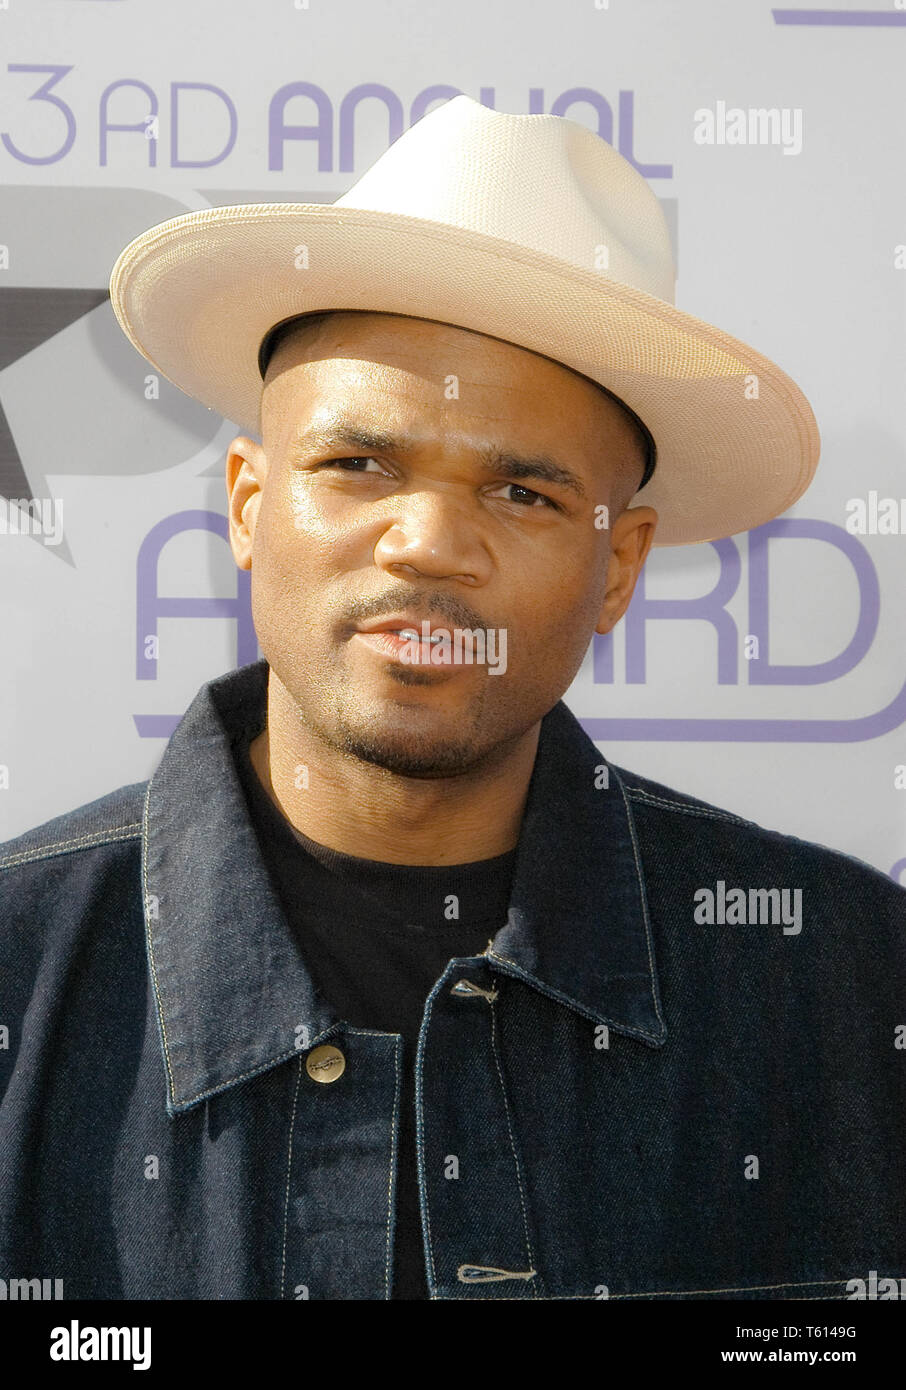 Darryl McDaniels, 'DMC' of Run DMC at the 3rd Annual BET Awards, held at The Kodak Theatre in Hollywood, CA. The event took place on Tuesday, June 24, 2003. Photo by: SBM / PictureLux  File Reference # 33790_1883SBMPLX - Stock Image